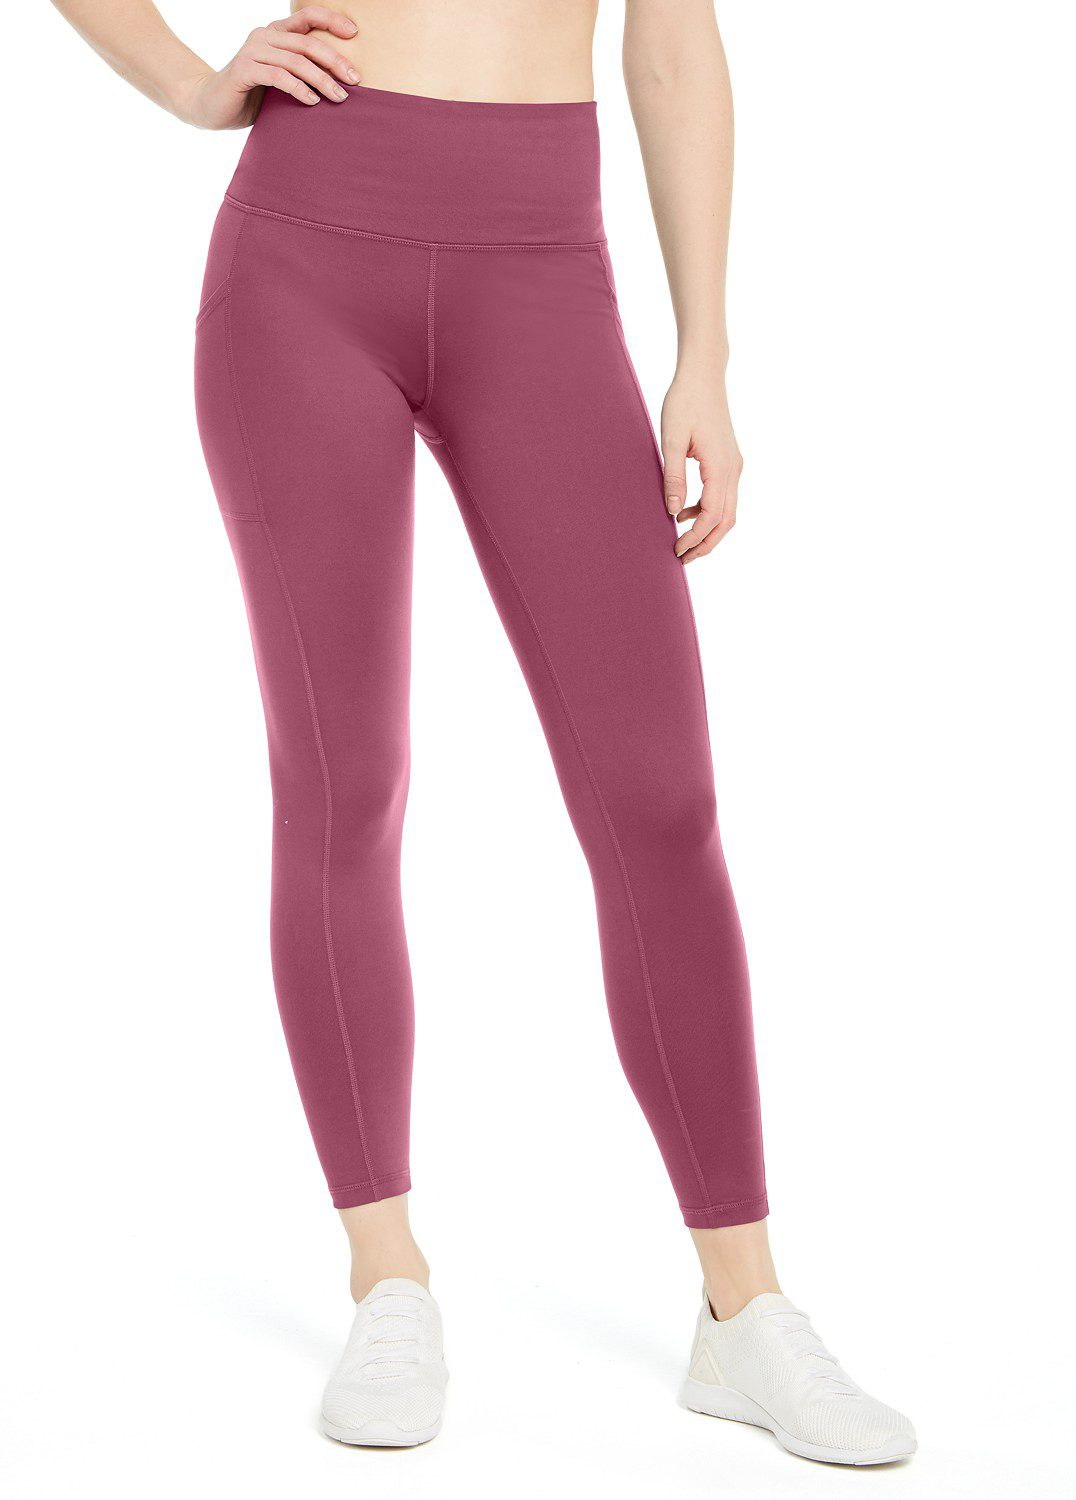 High-Waist Side-Pocket Leggings